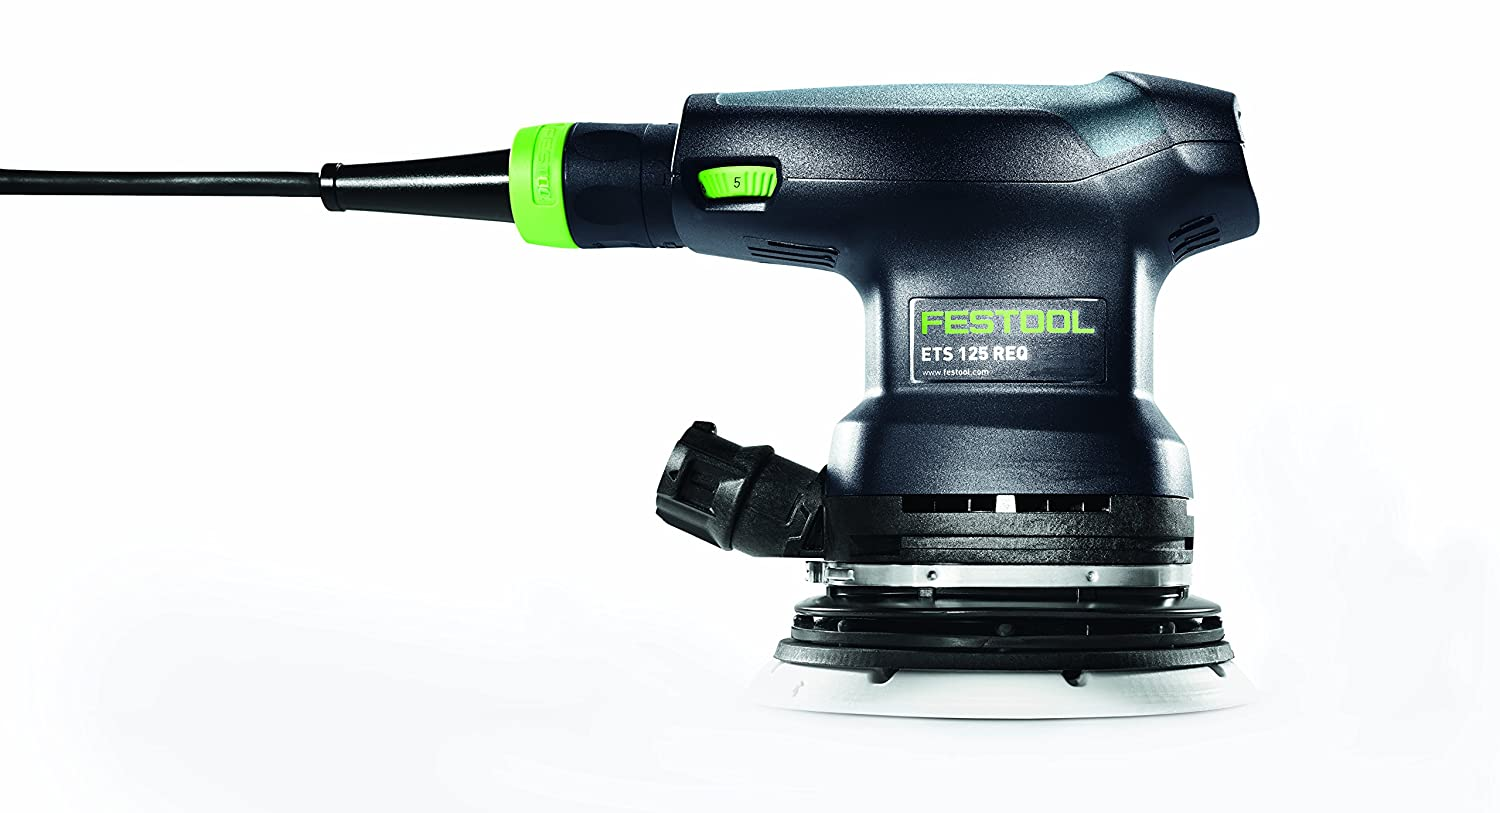 Festool 574993 featured image